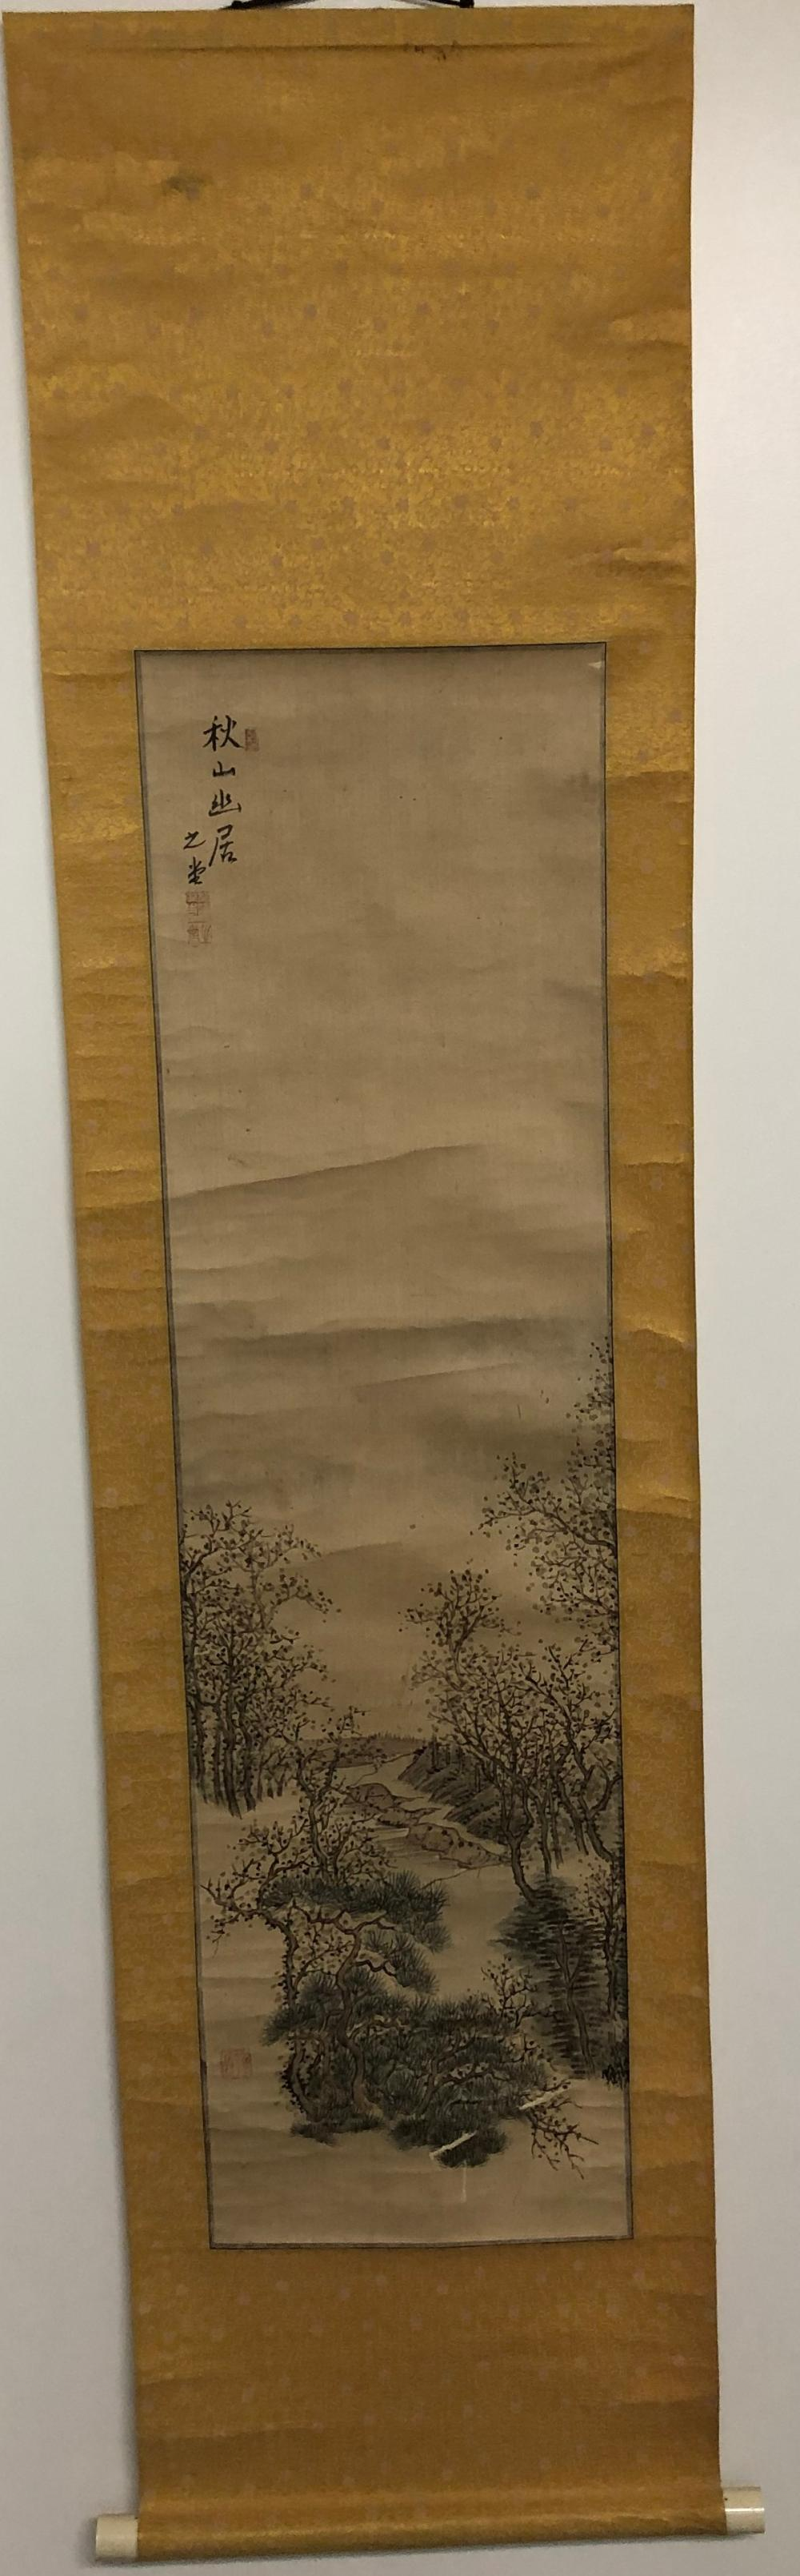 Antique Chines landscapes Scroll